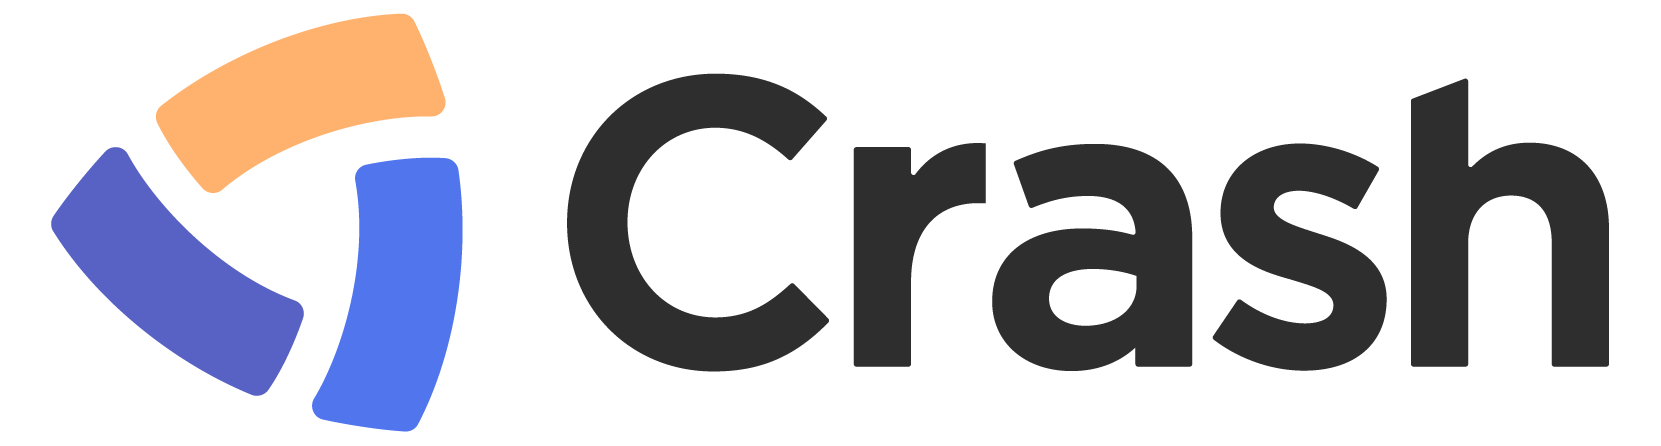 Career Crash logo horizontal